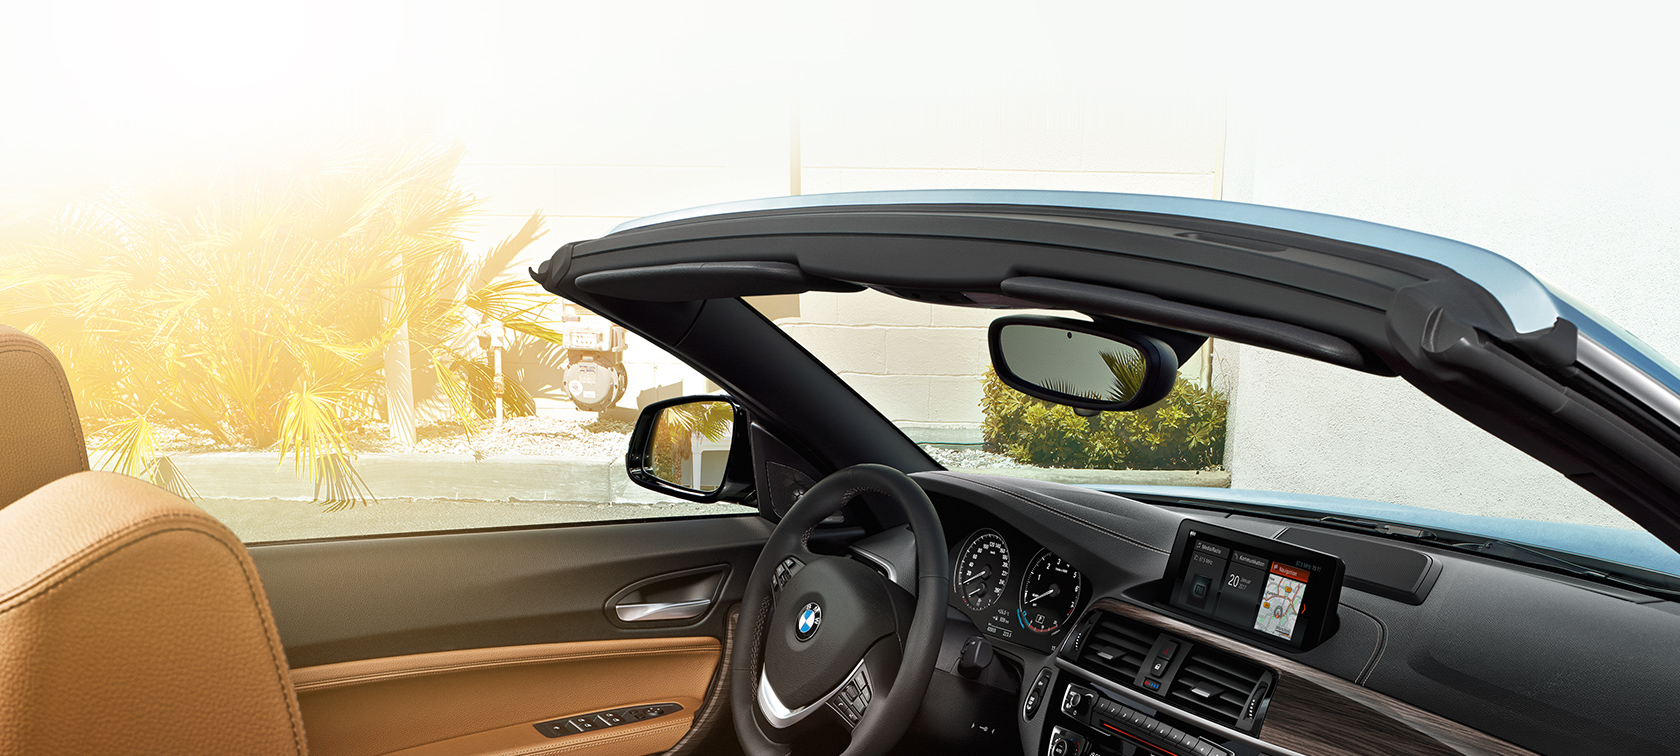 BMW 2-Series Convertible front window view